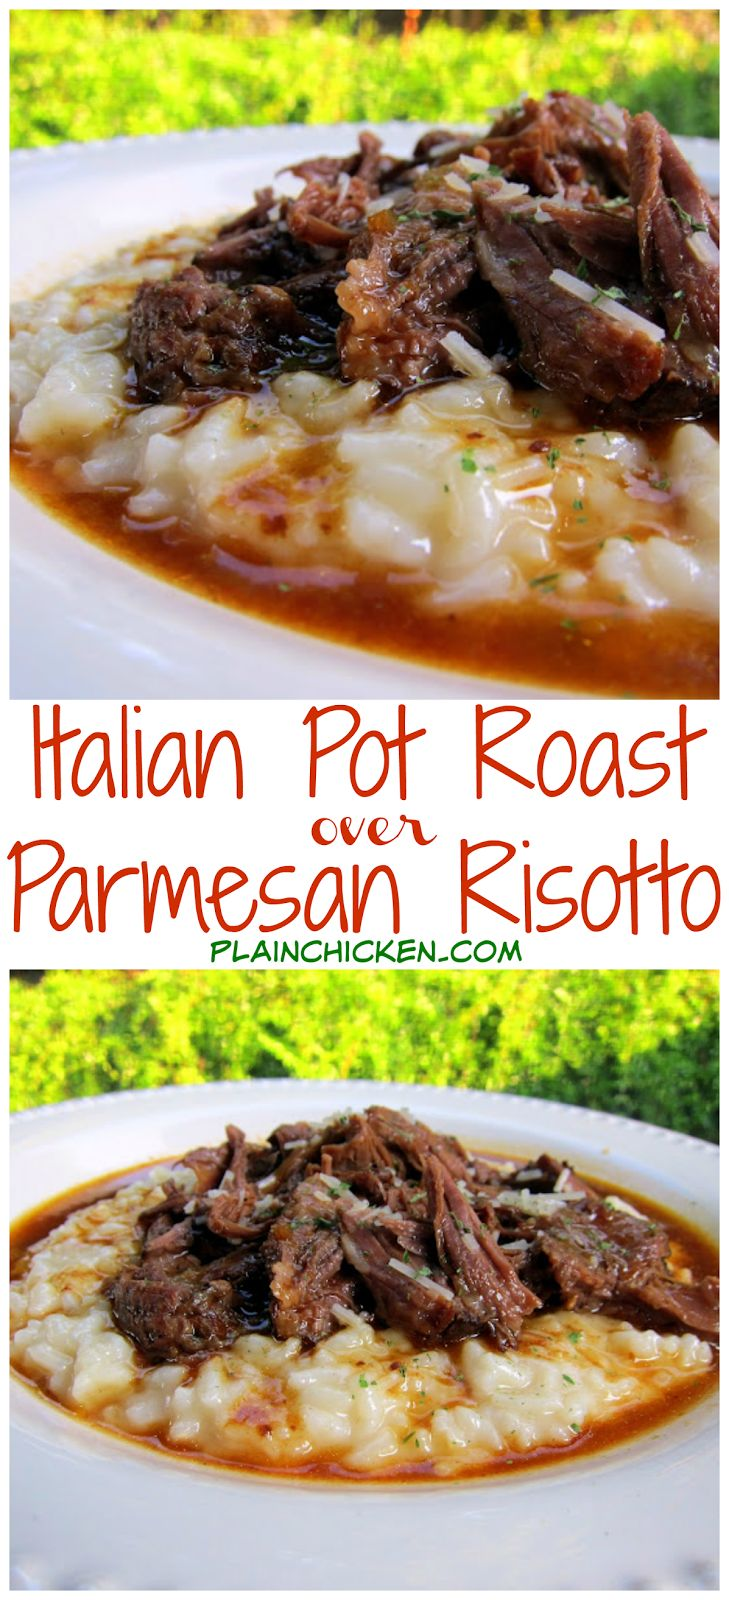 Italian Pot Roast over Parmesan Risotto - THE BEST post roast! Pot Roast slow cooked all day in tomato juice, italian seasoning and au jus mix. Serve over a quick homemade parmesan risotto. I literally licked my plate!